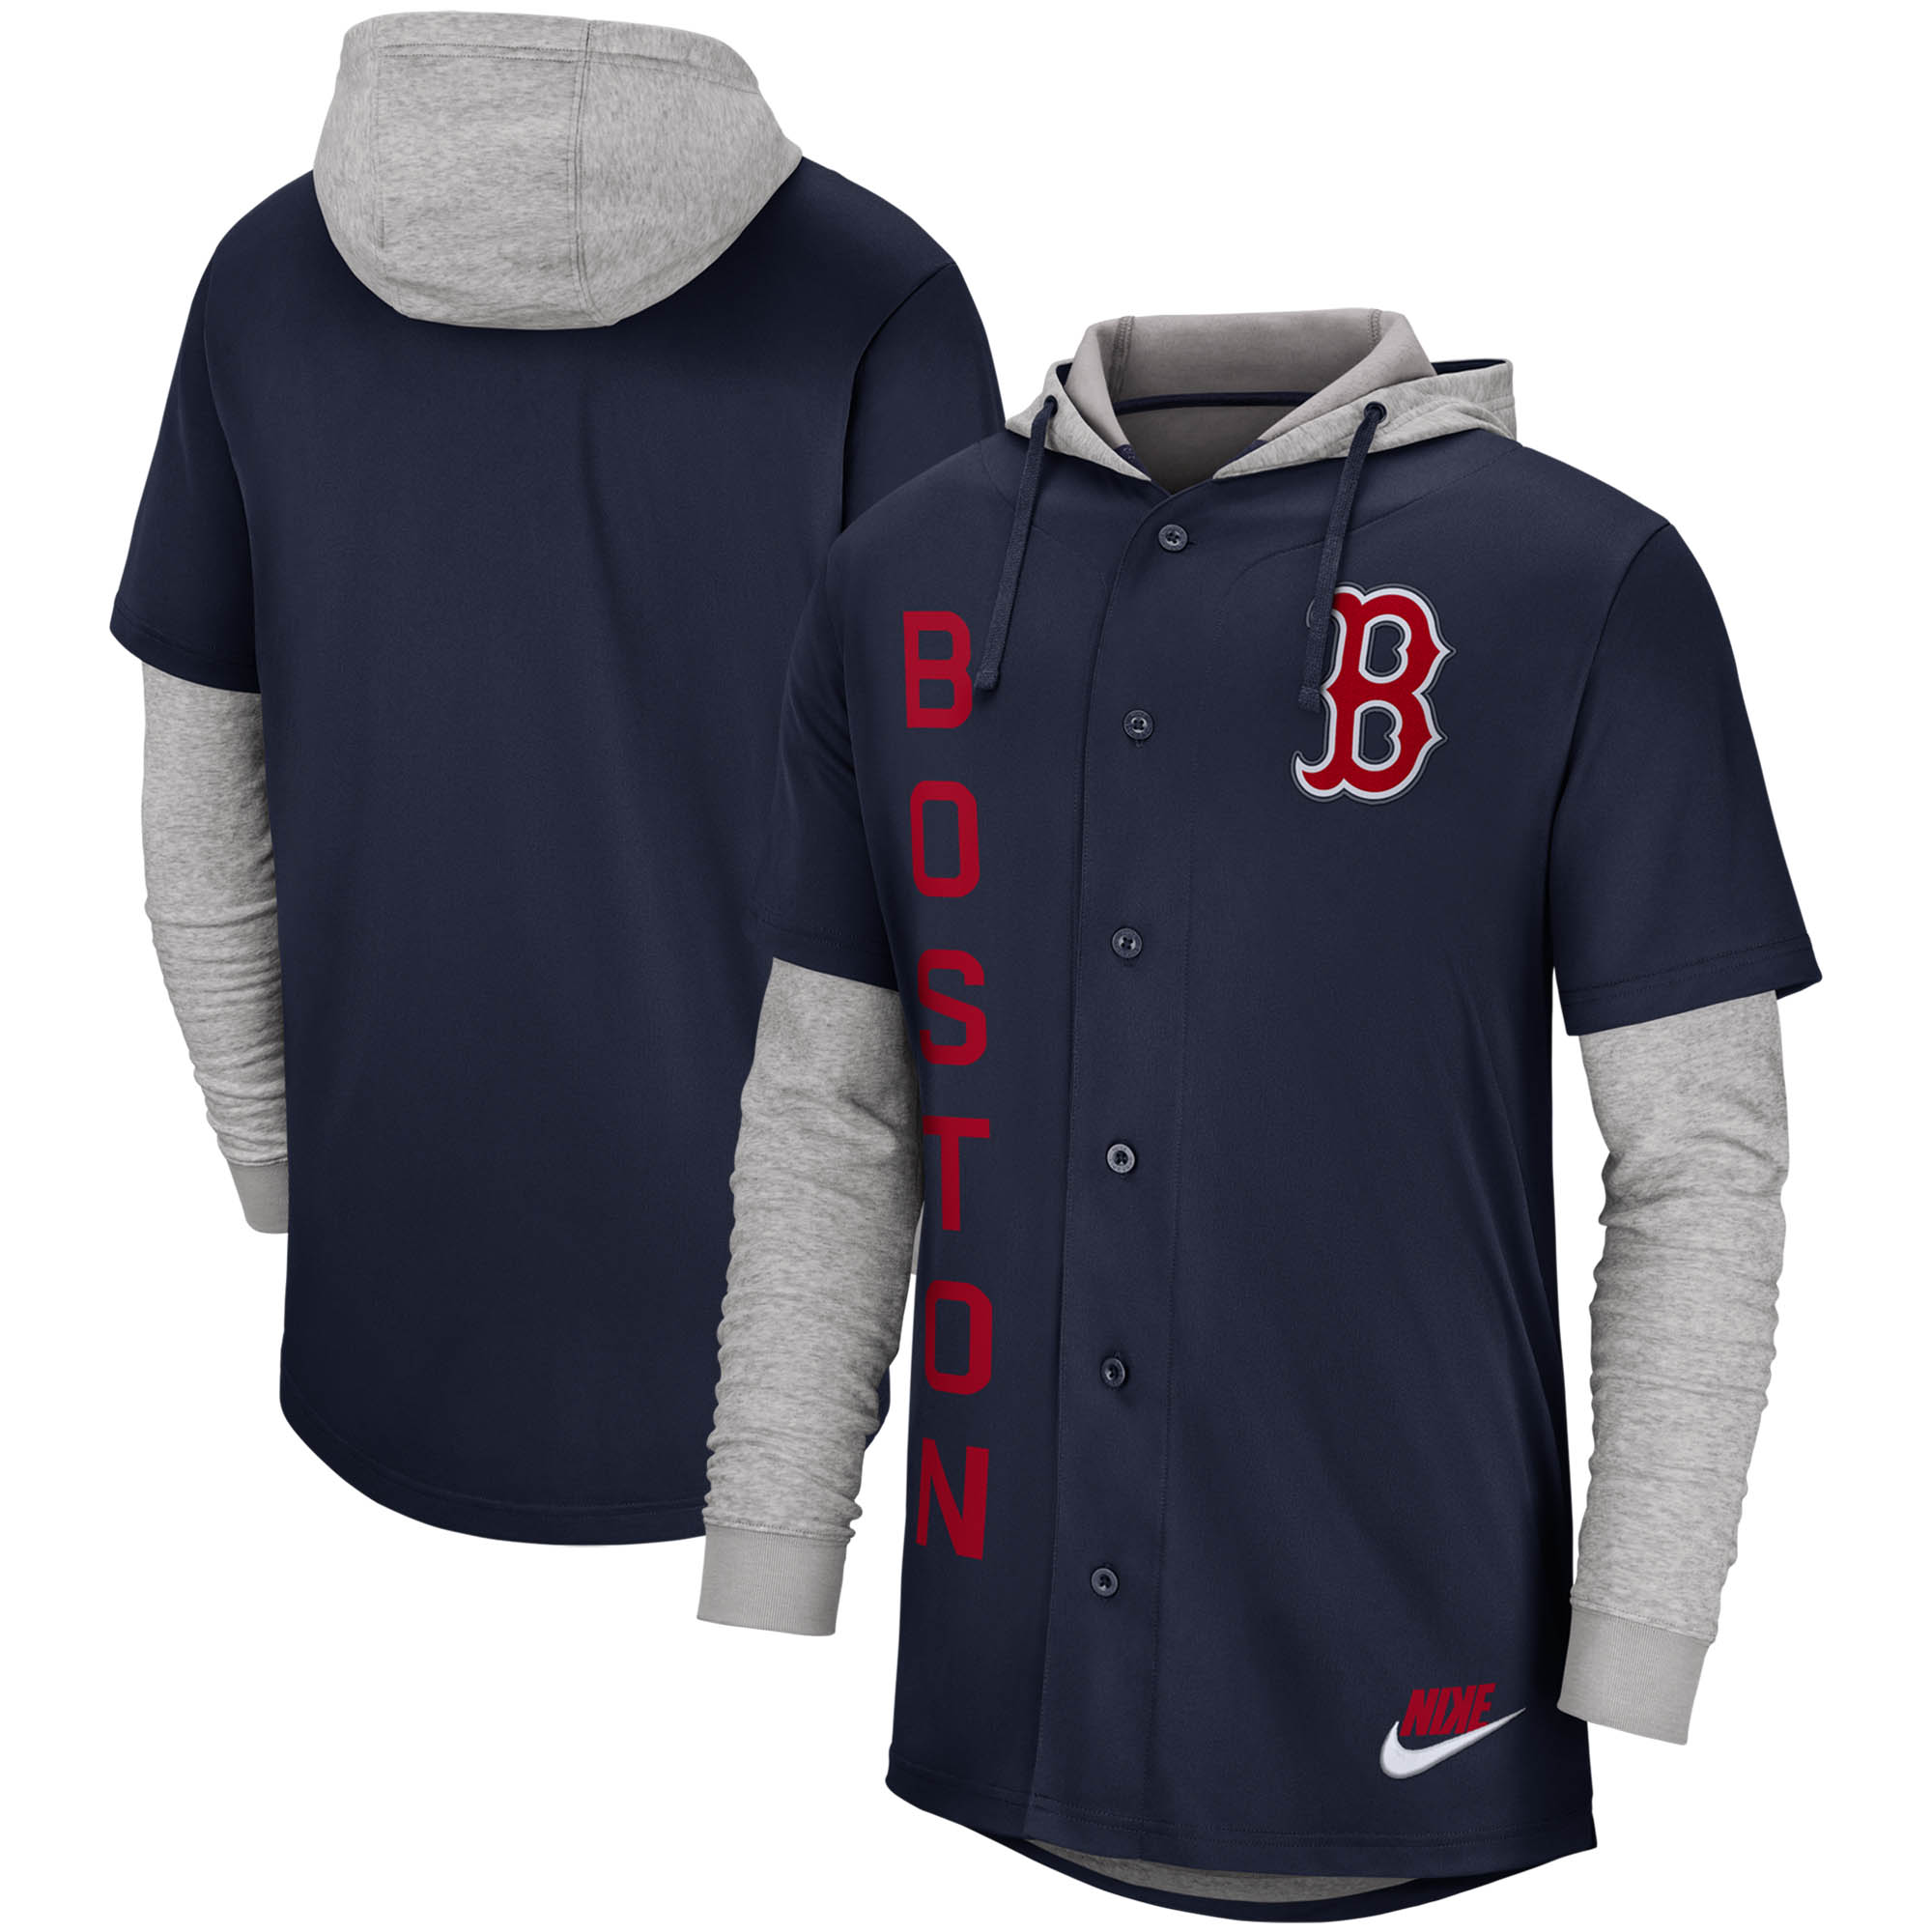 Boston Red Sox Nike Jersey Button-Up Hoodie - Navy